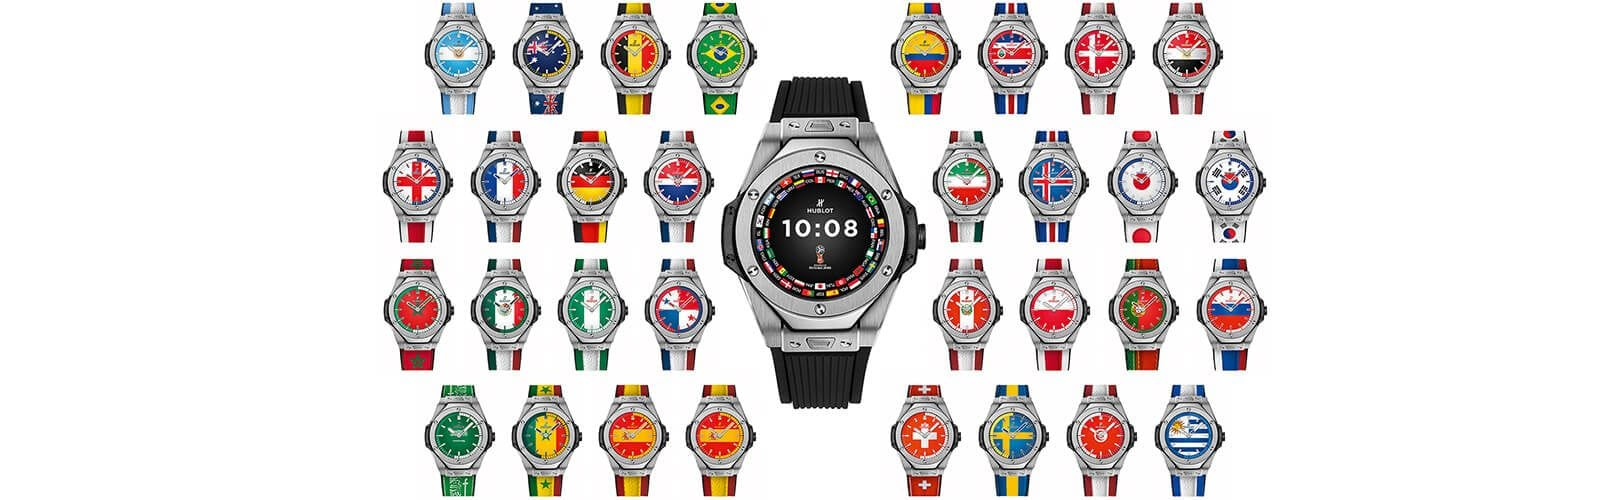 Hublot Big Bang Referee 2018 FIFA World Cup Russia Replica Price